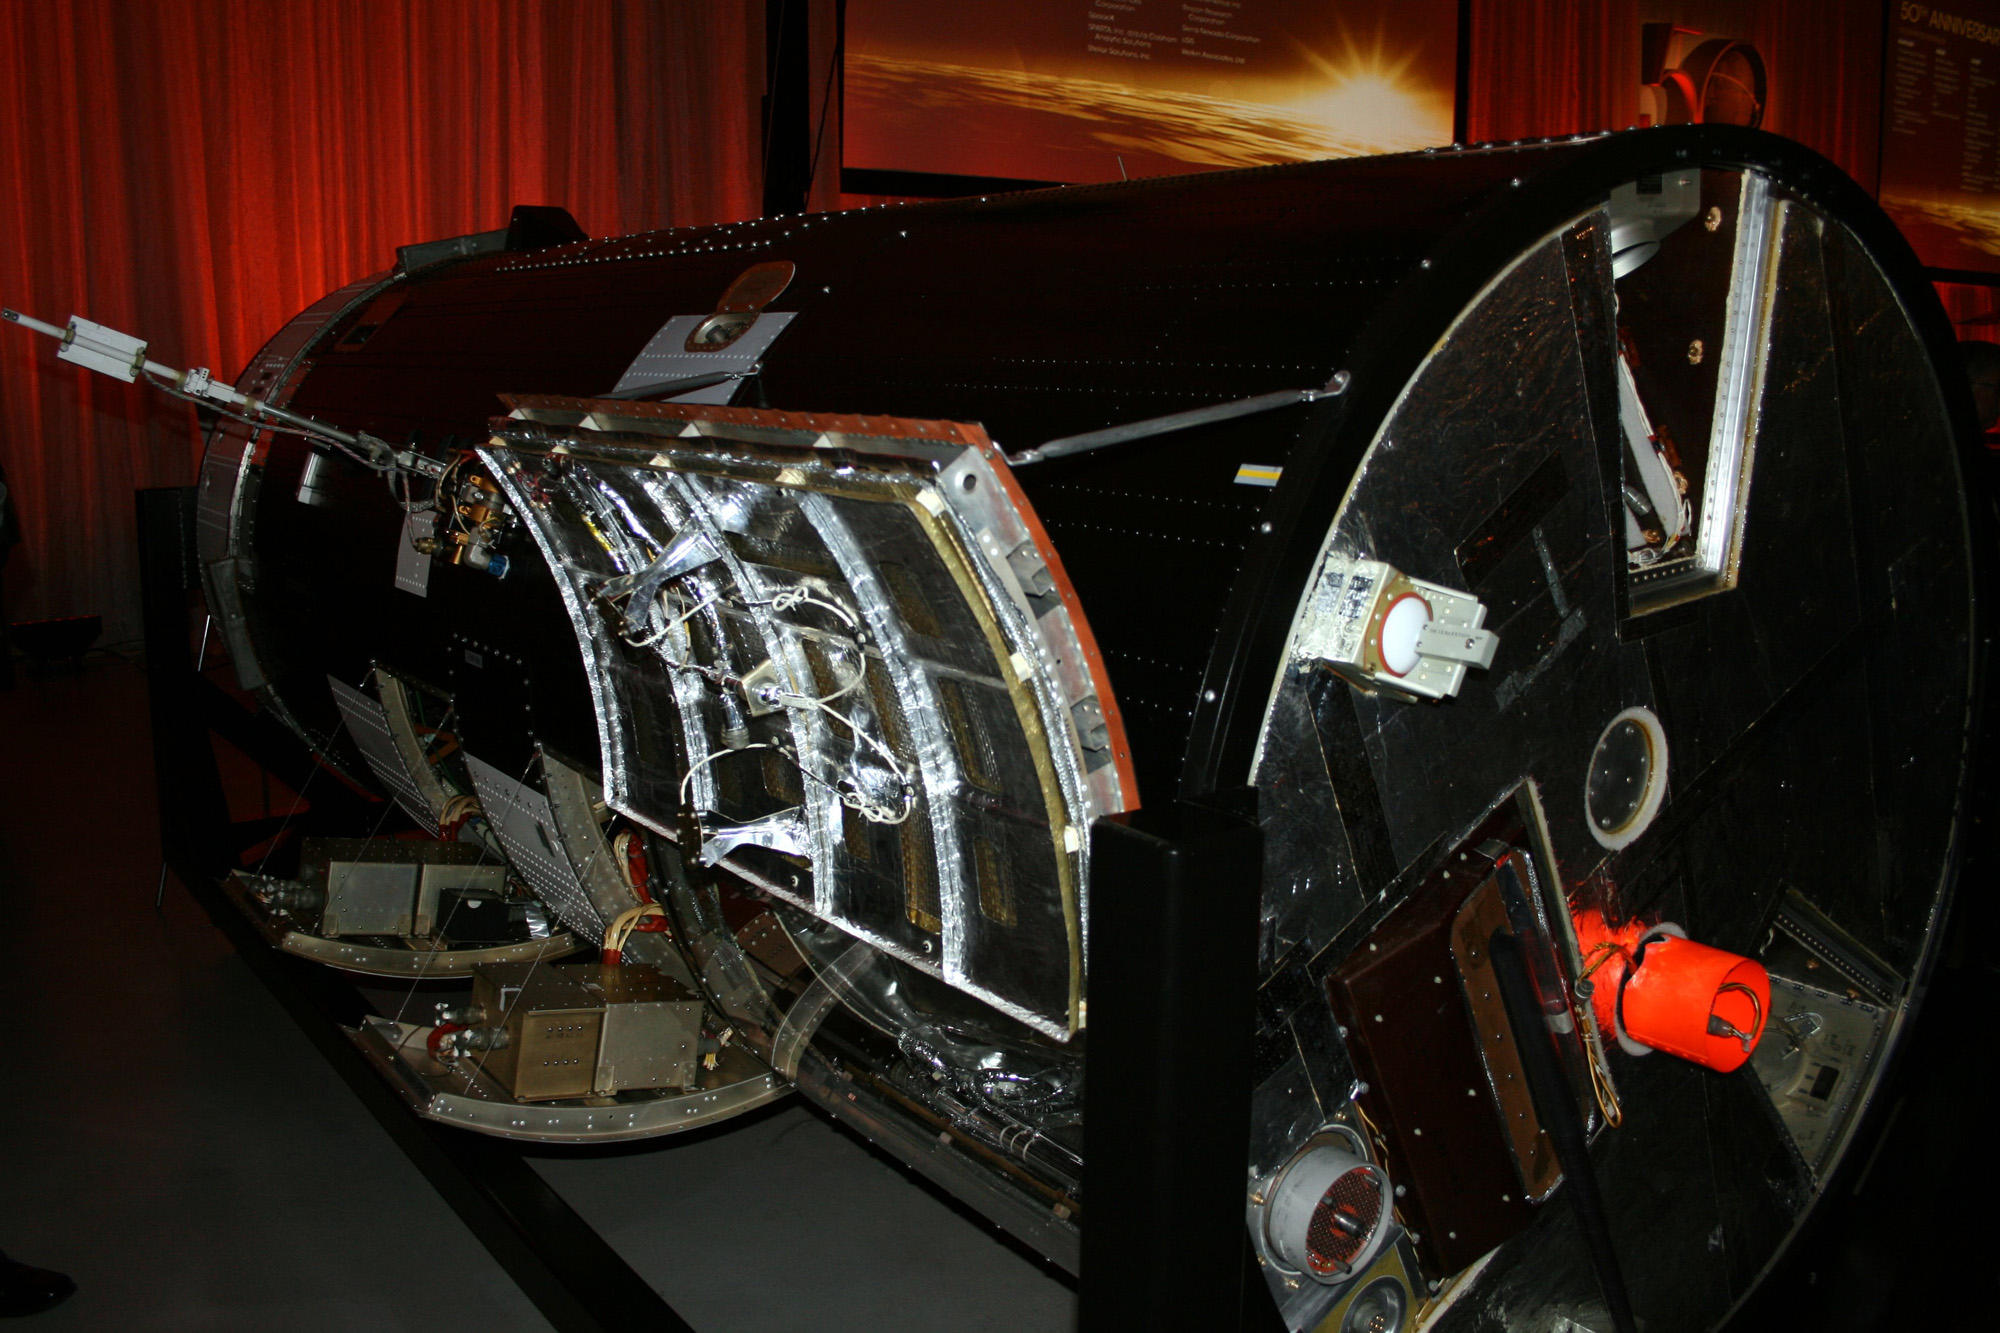 The KH-7 GAMBIT Spy Satellite: Rear View